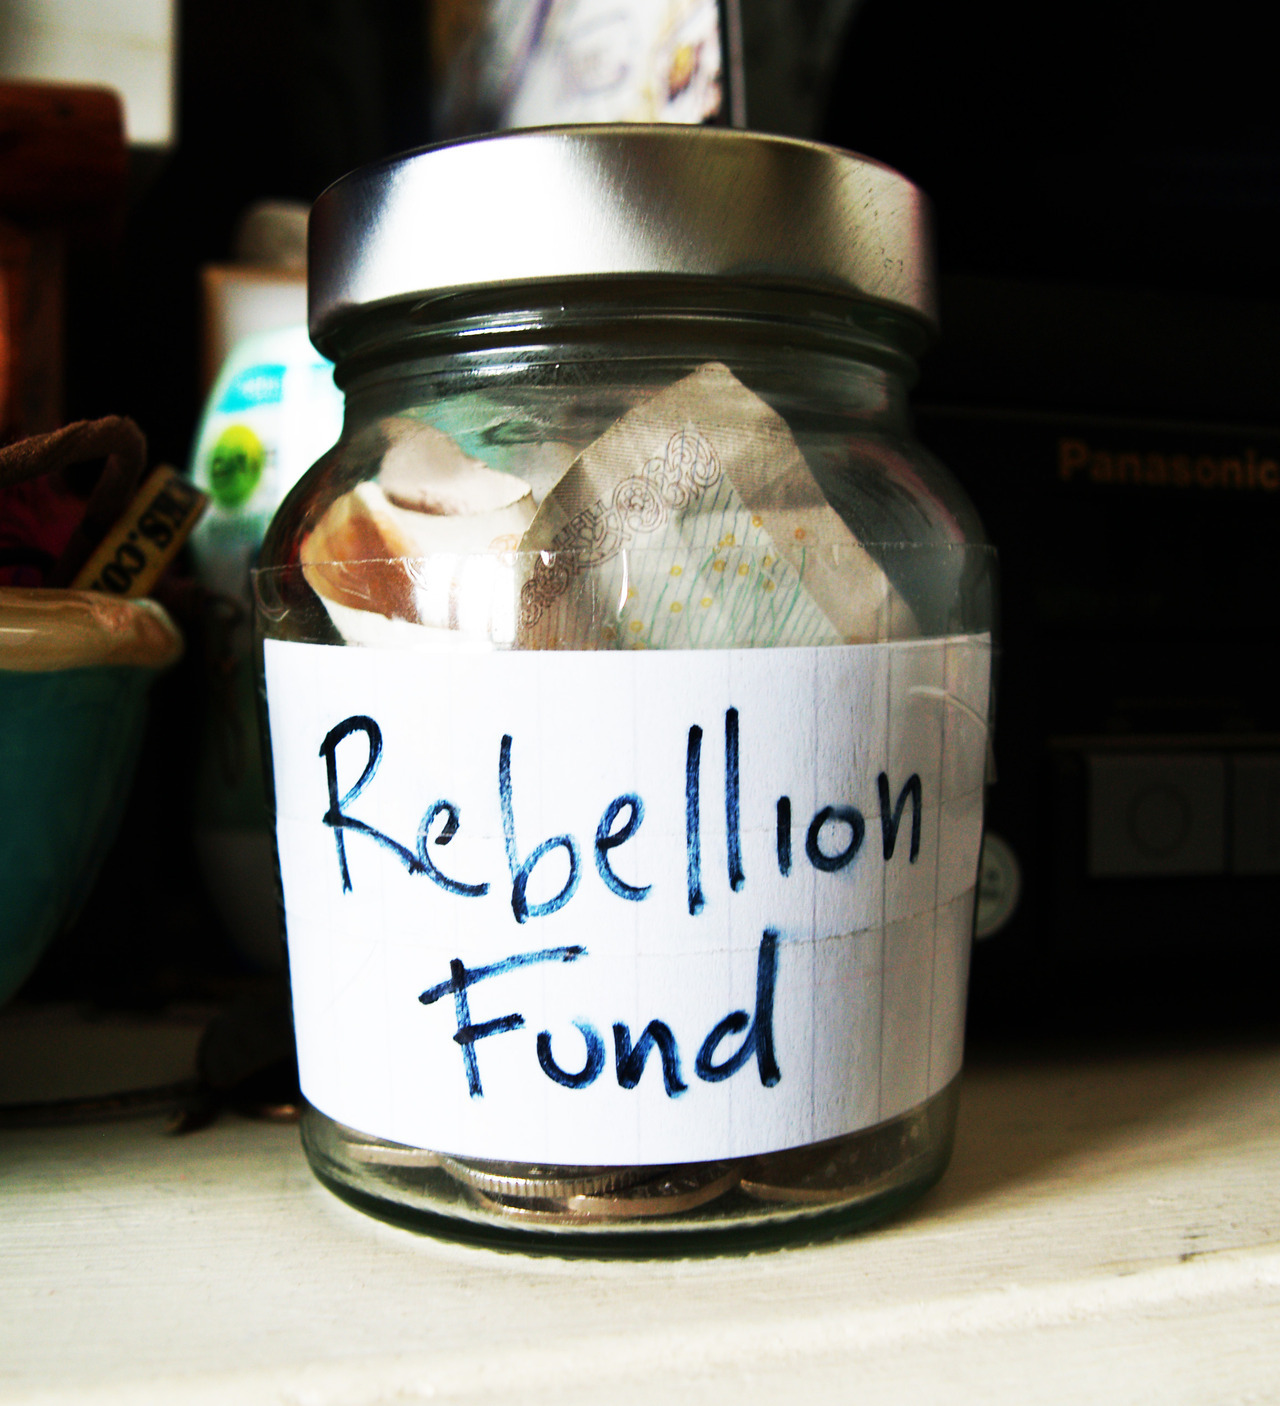 Rebellion Festival Fund! got £15 so far! it is not coming out of that jar. ITS GOING TO BE AWESOME! HAPPY REBELLION YOU HAVE A LOVELY FACE!